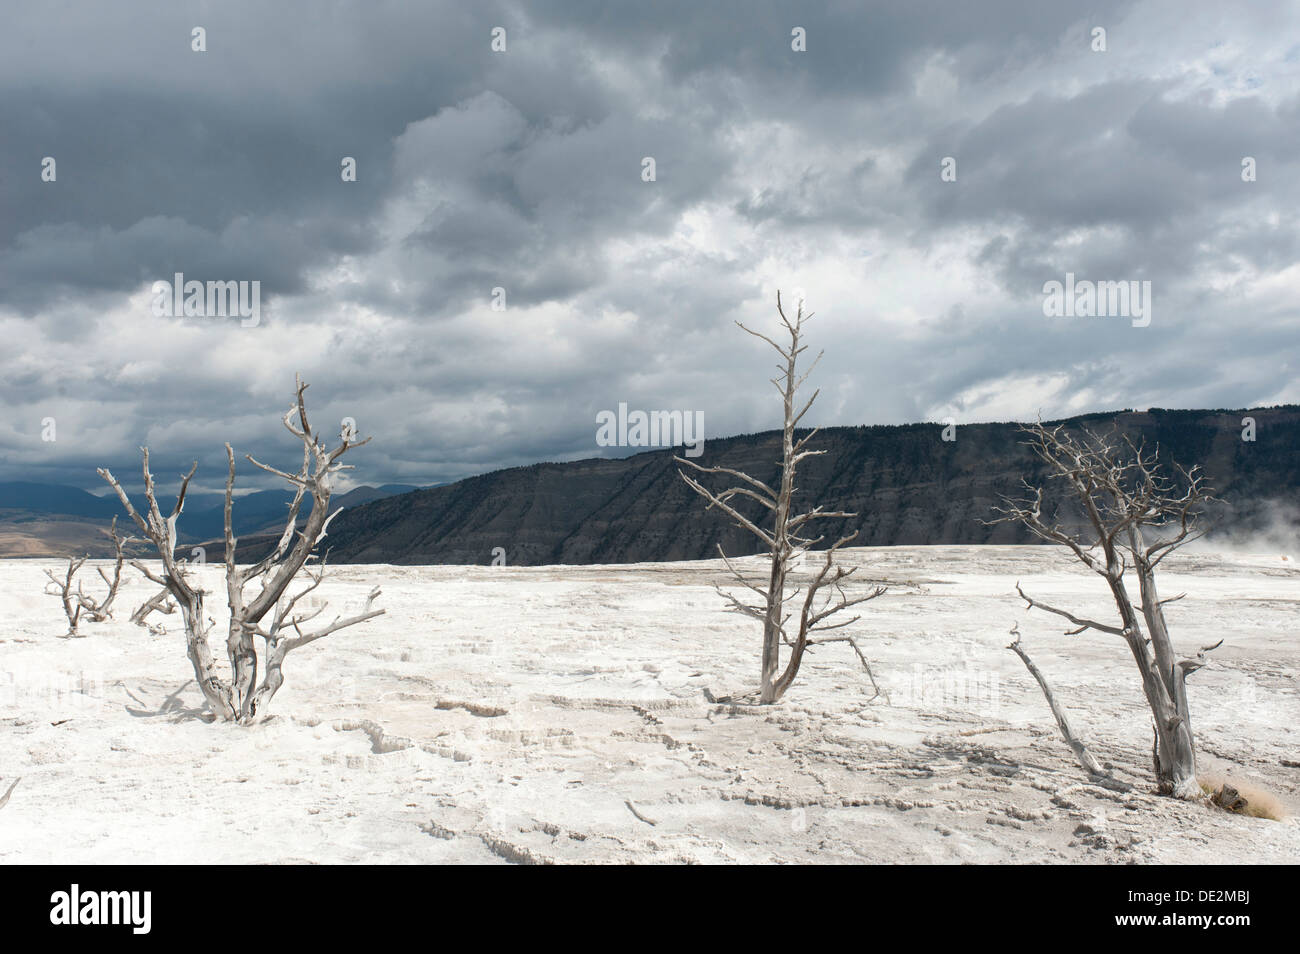 Geomorphology, limestone sinter terraces, dead trees, Canary Spring, Main Terrace, Mammoth Hot Springs - Stock Image